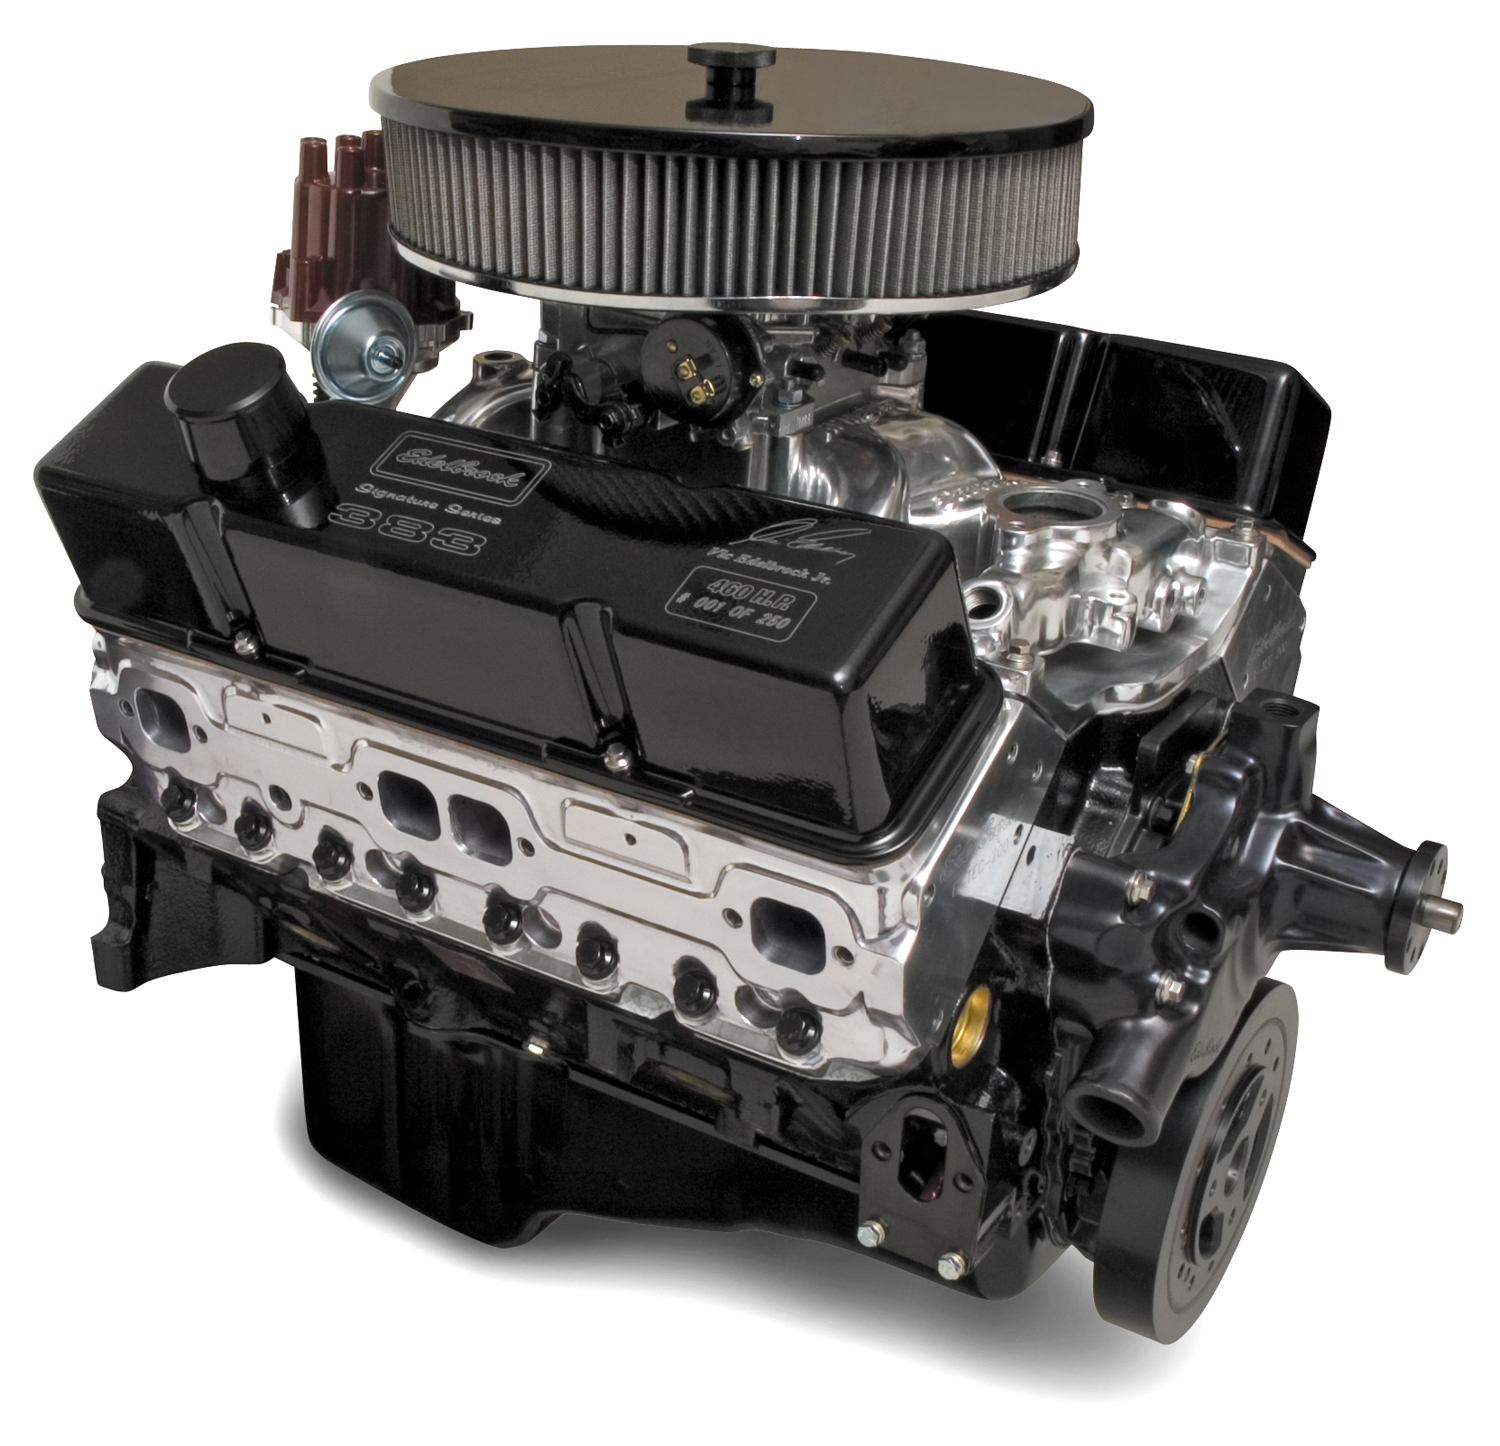 Edelbrock crate engines ford autos post for Crate motors ford f150